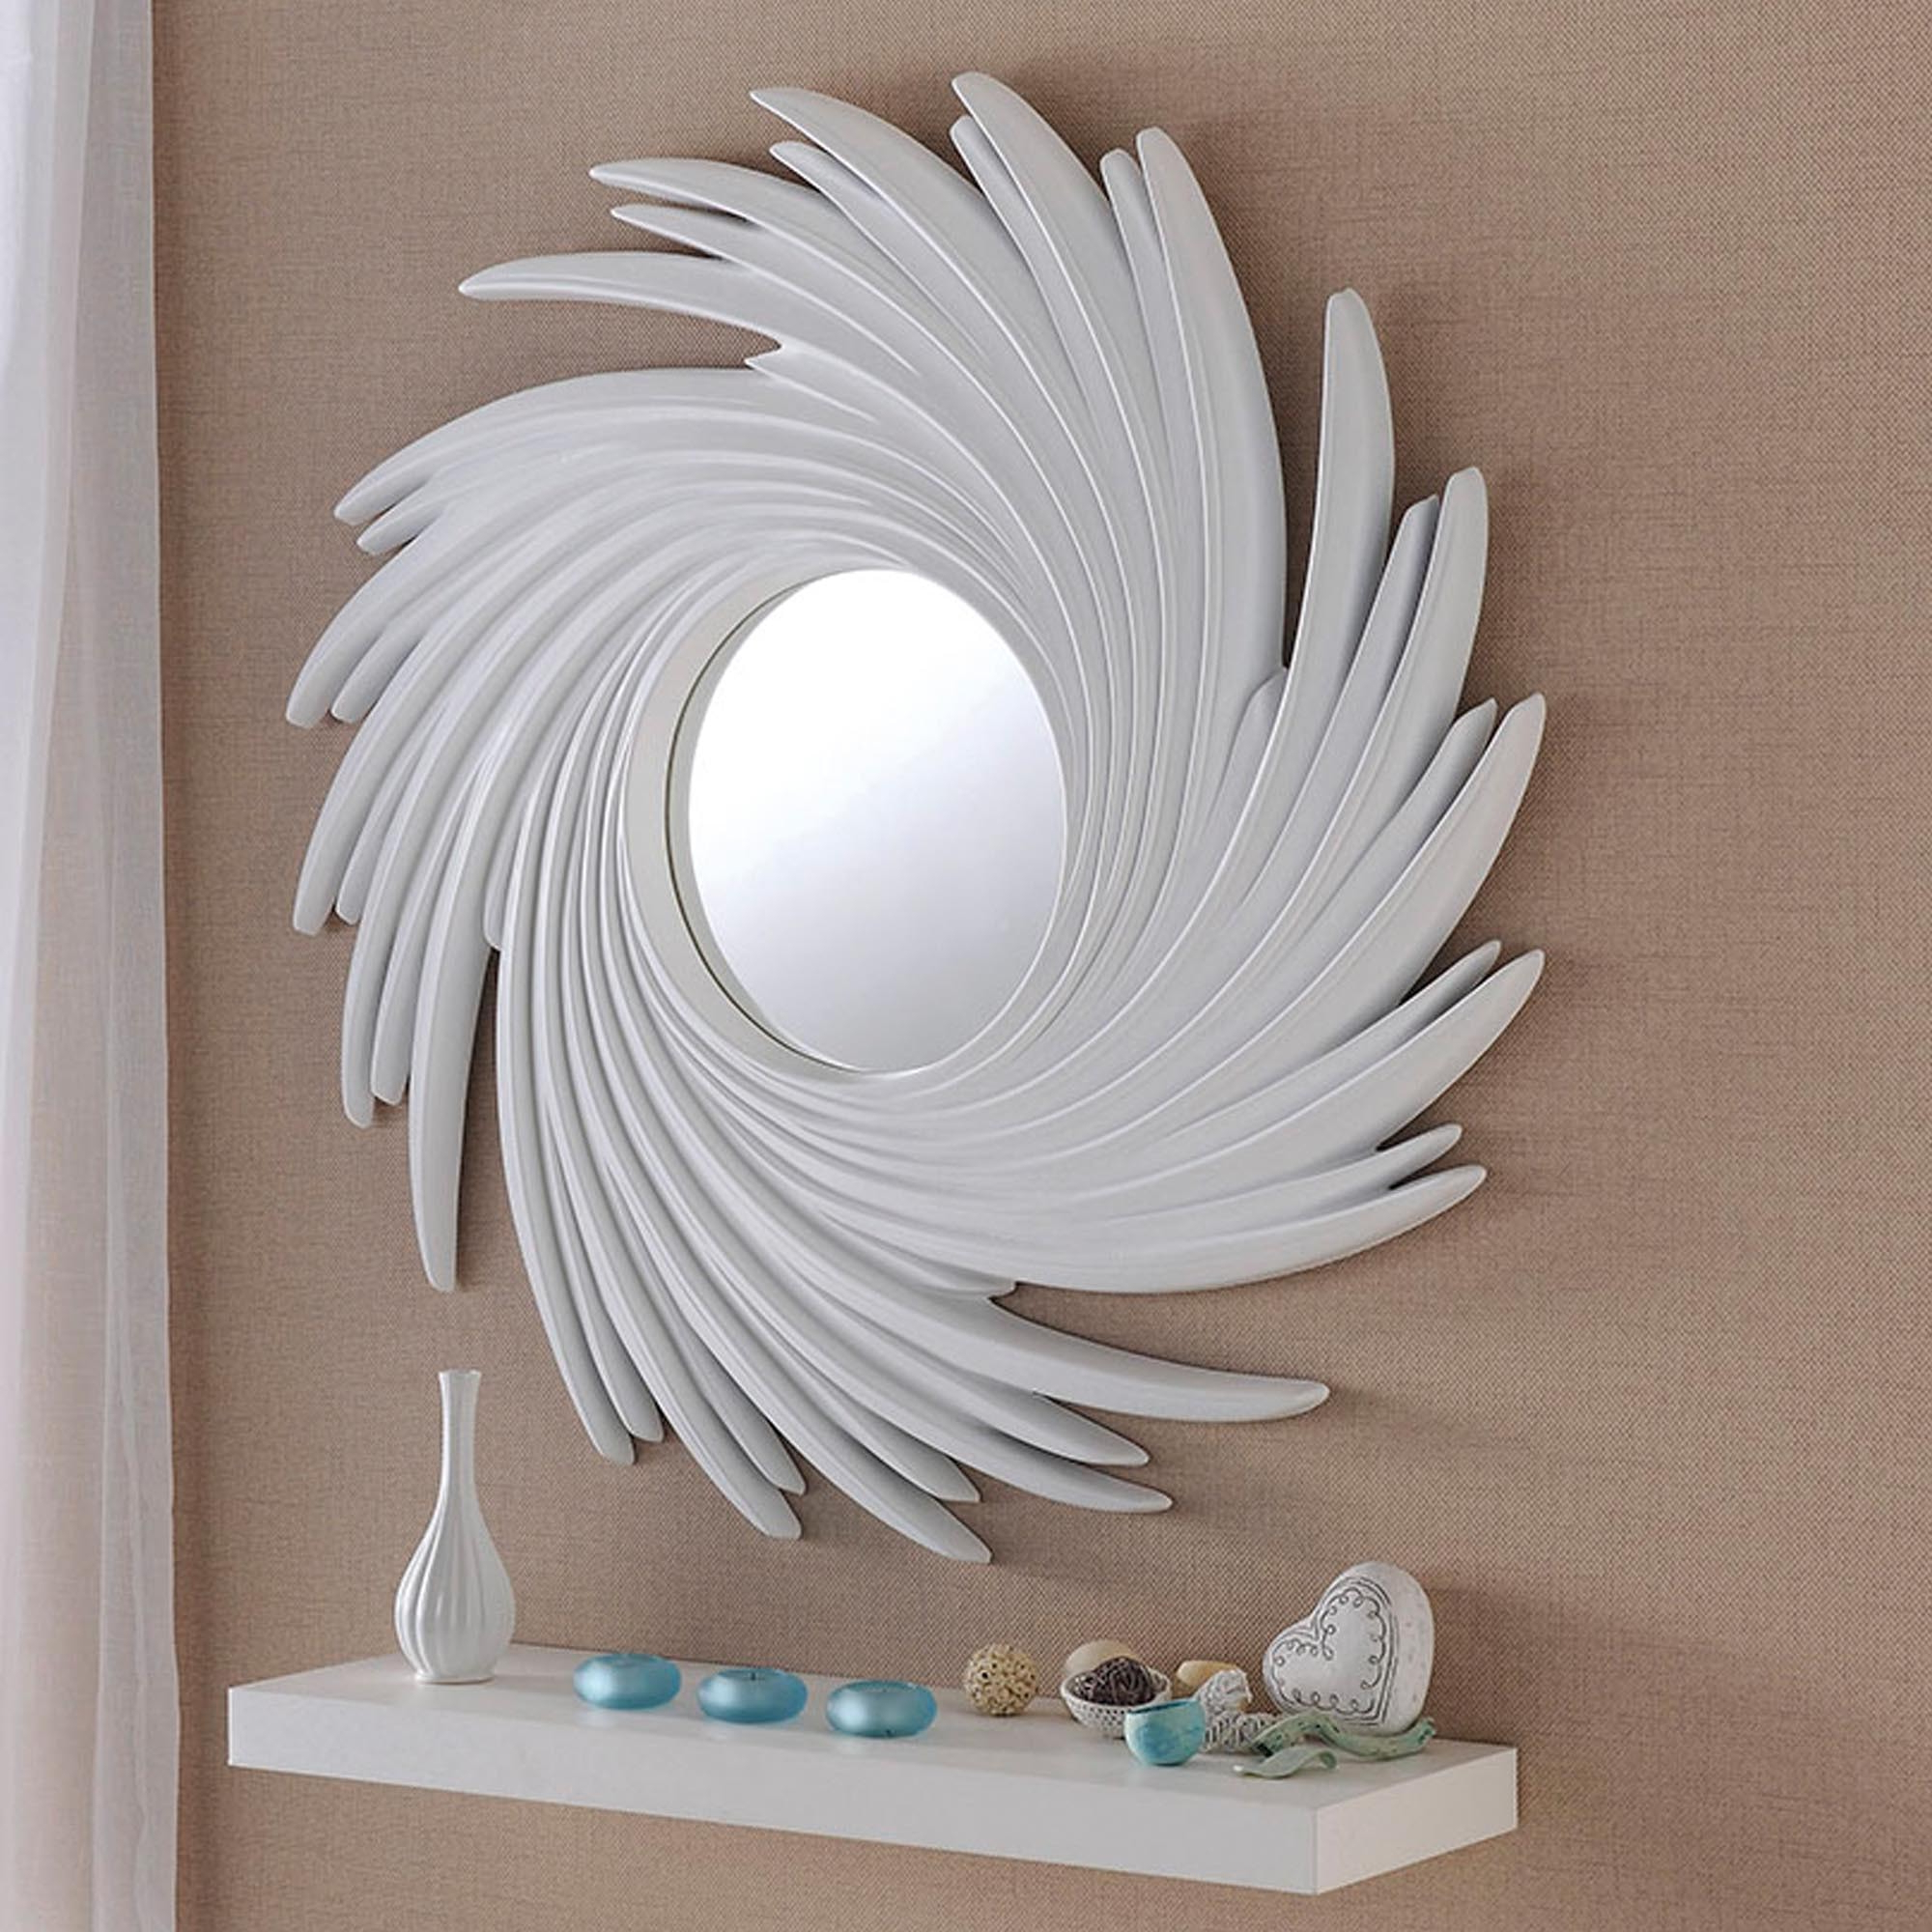 Preferred Contemporary White Swirl Wall Mirror Pertaining To Swirl Wall Mirrors (Gallery 10 of 20)